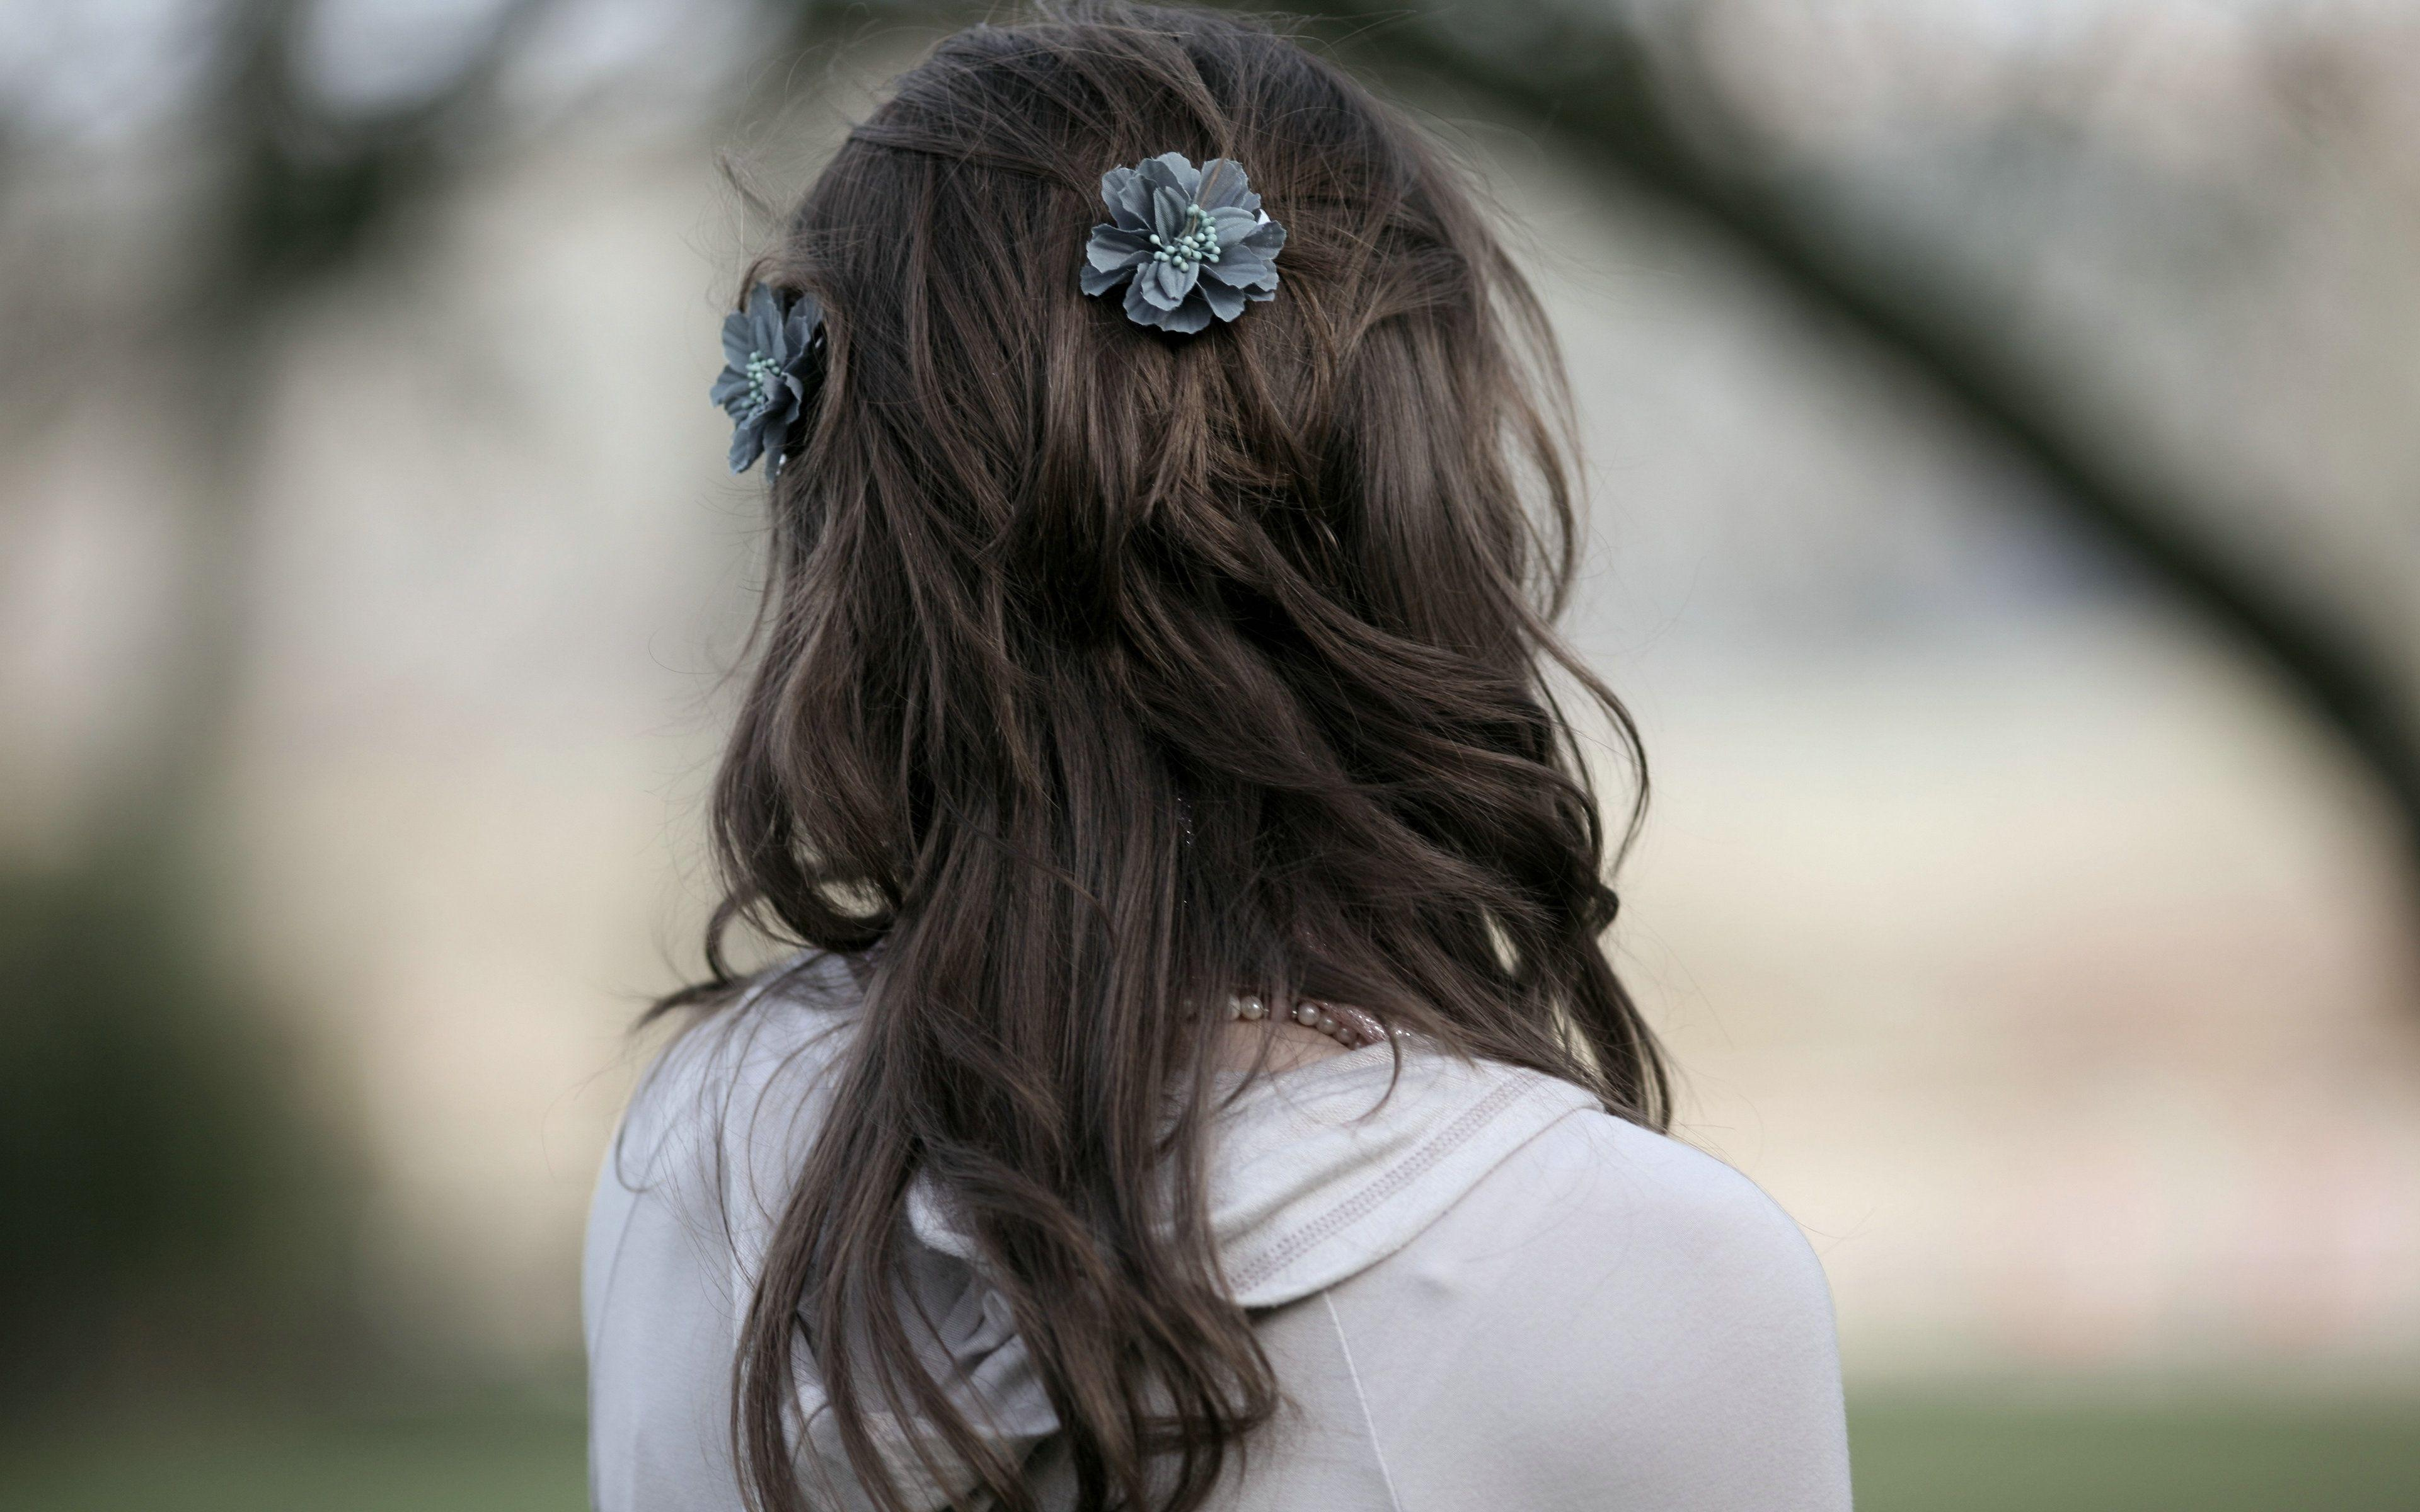 Beautiful sad girl wallpapers 45 backgrounds images pictures